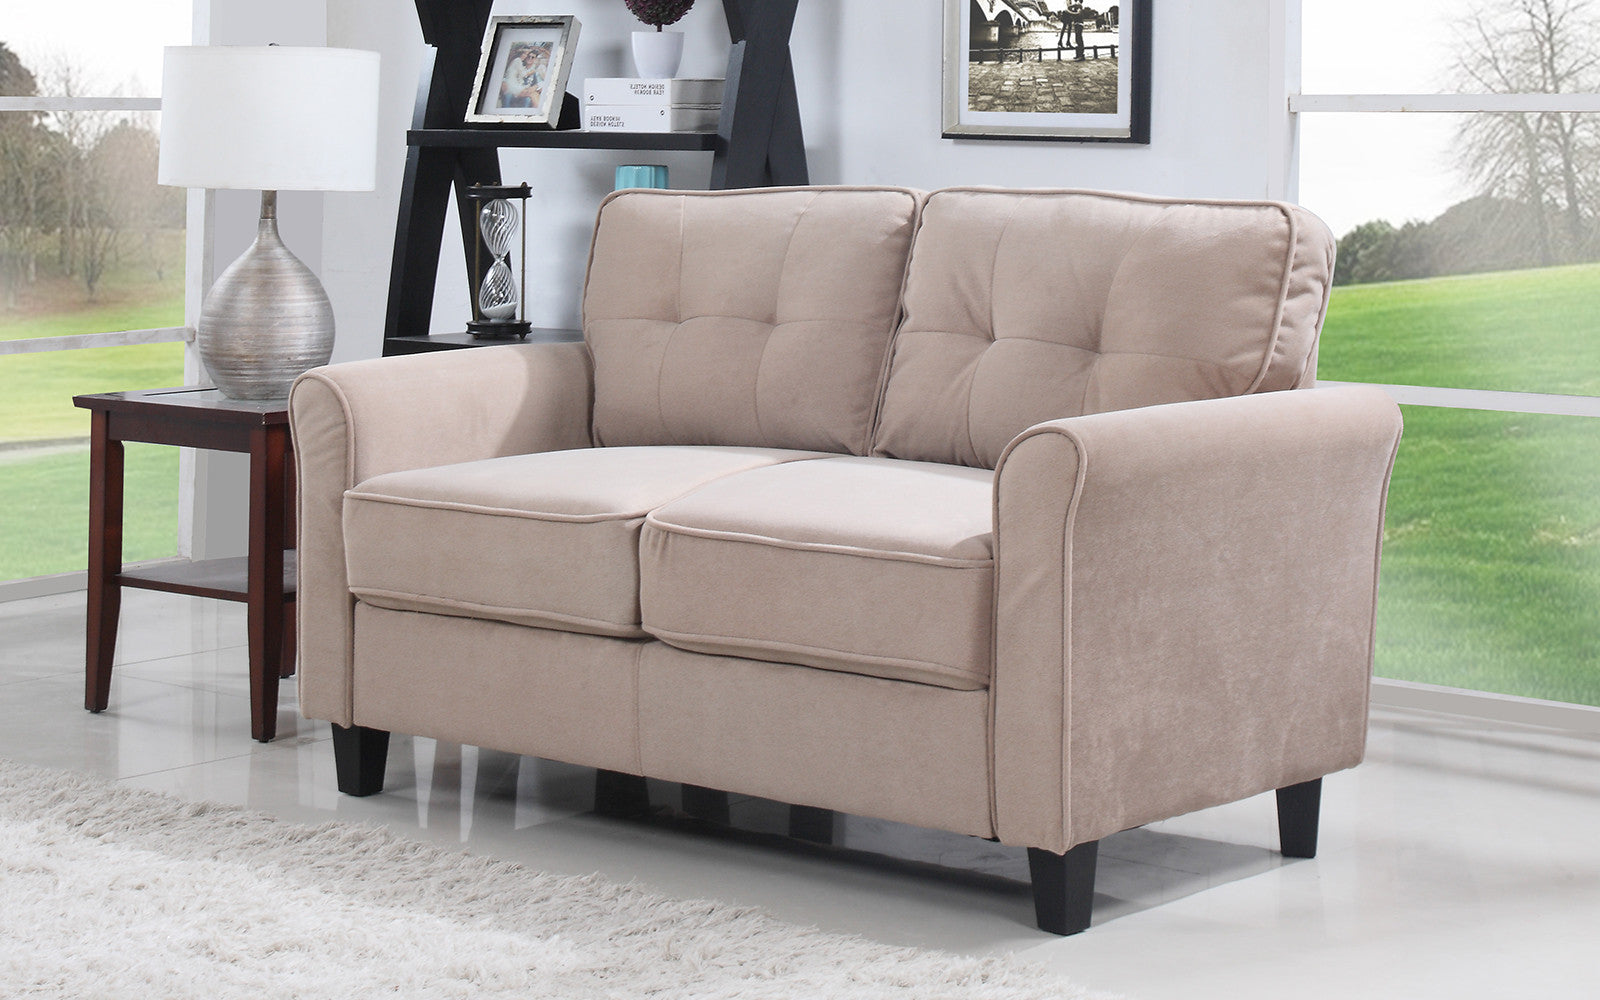 bed tan sofa loveseat interior suede micro microfiber mineral bauhaus linden convertible sectional and couch